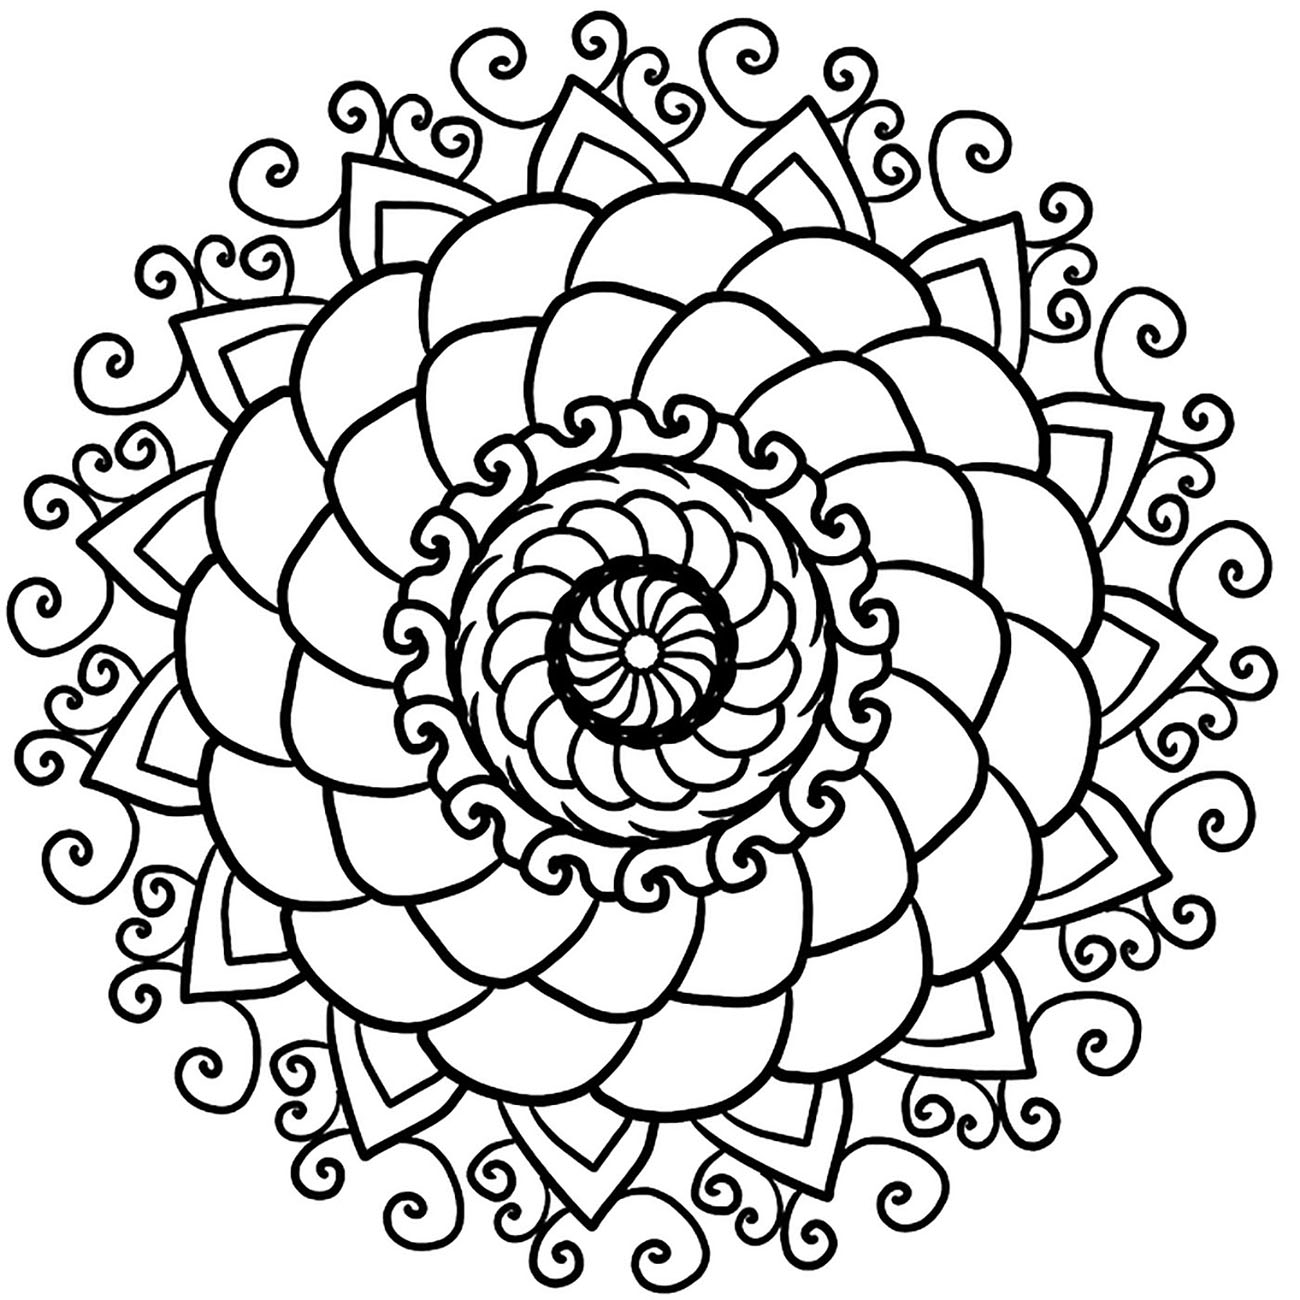 Color this beautiful Mandala and feel the benefits of coloring cool coloring pages. In various spiritual traditions, mandalas may be employed for focusing attention of practitioners and adepts, as a spiritual guidance tool, for establishing a sacred space and as an aid to meditation and trance induction.